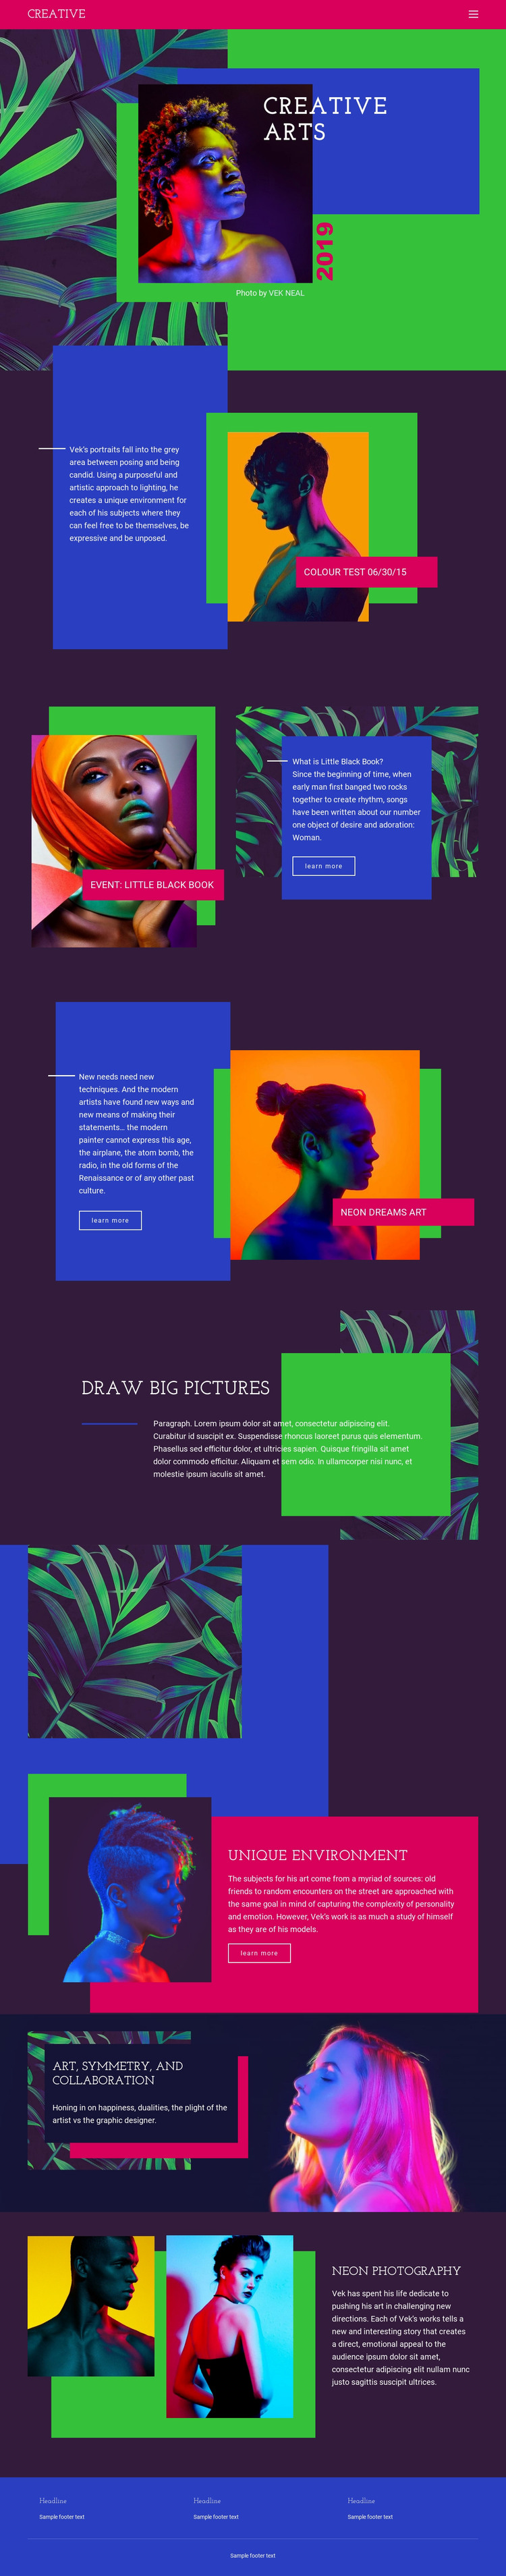 Creative Art Ideas Web Design